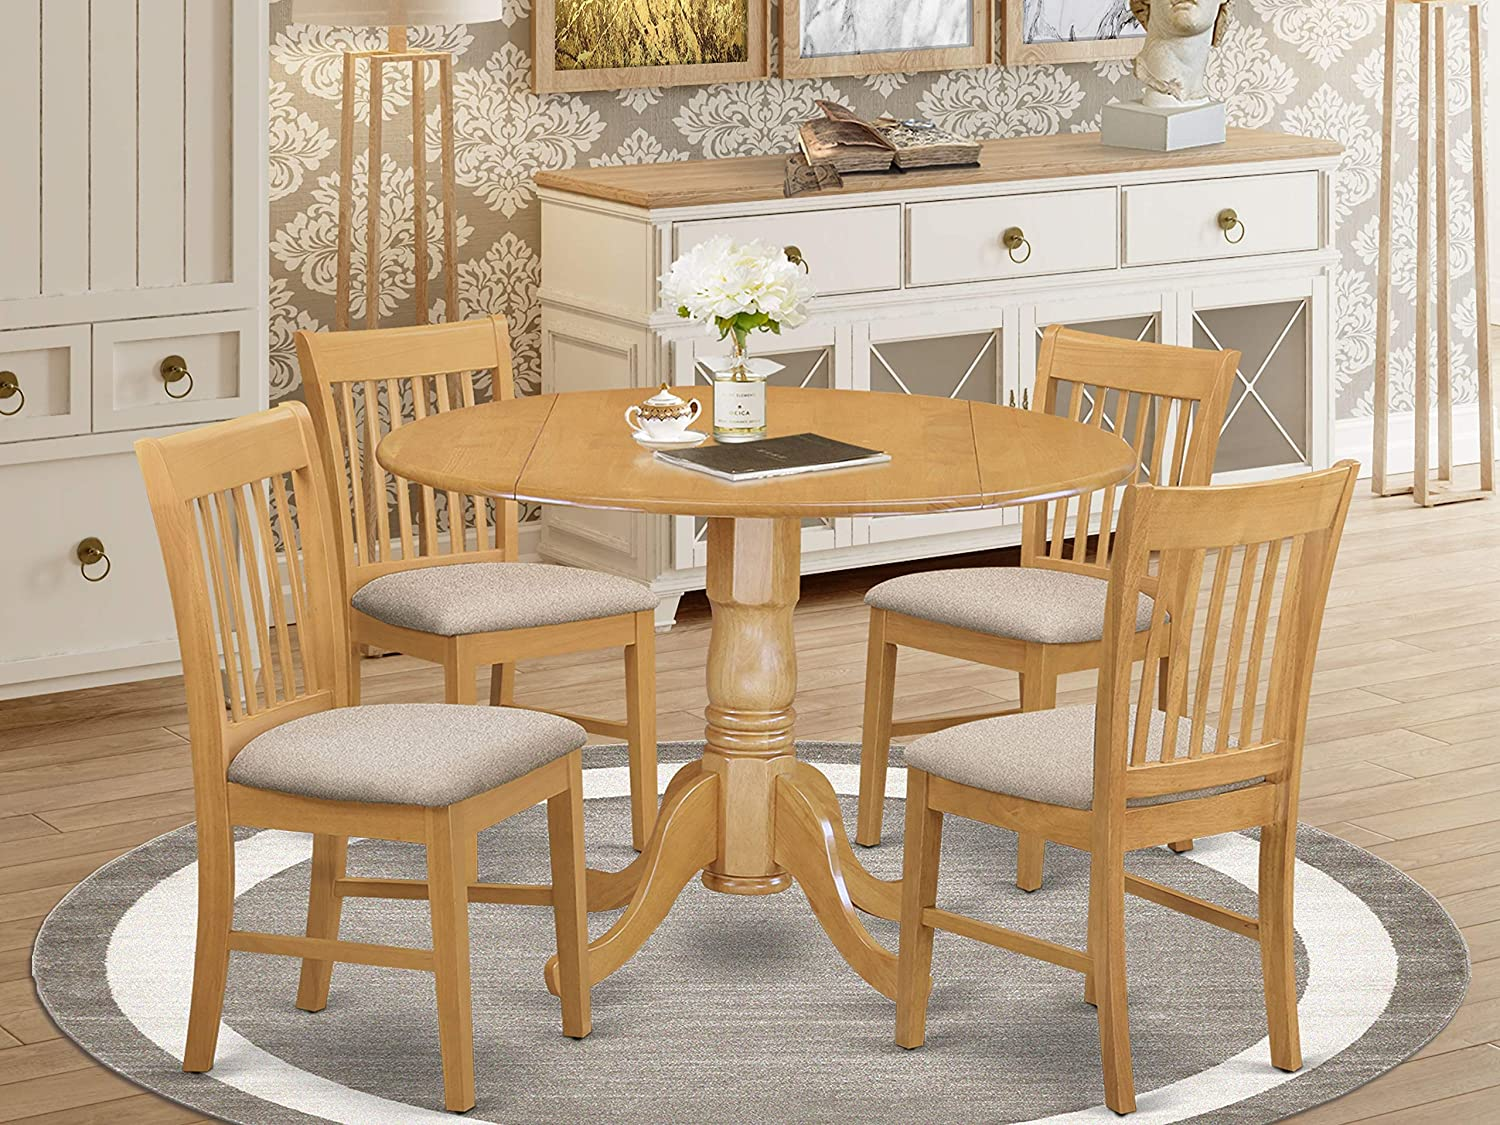 East West Furniture DLNO5-OAK-C 5-Piece round dining table set Oak finish- Two 9-inch Drops Leave and Pedestal Legs small table & 4 Slatted Back mid century dining chairs